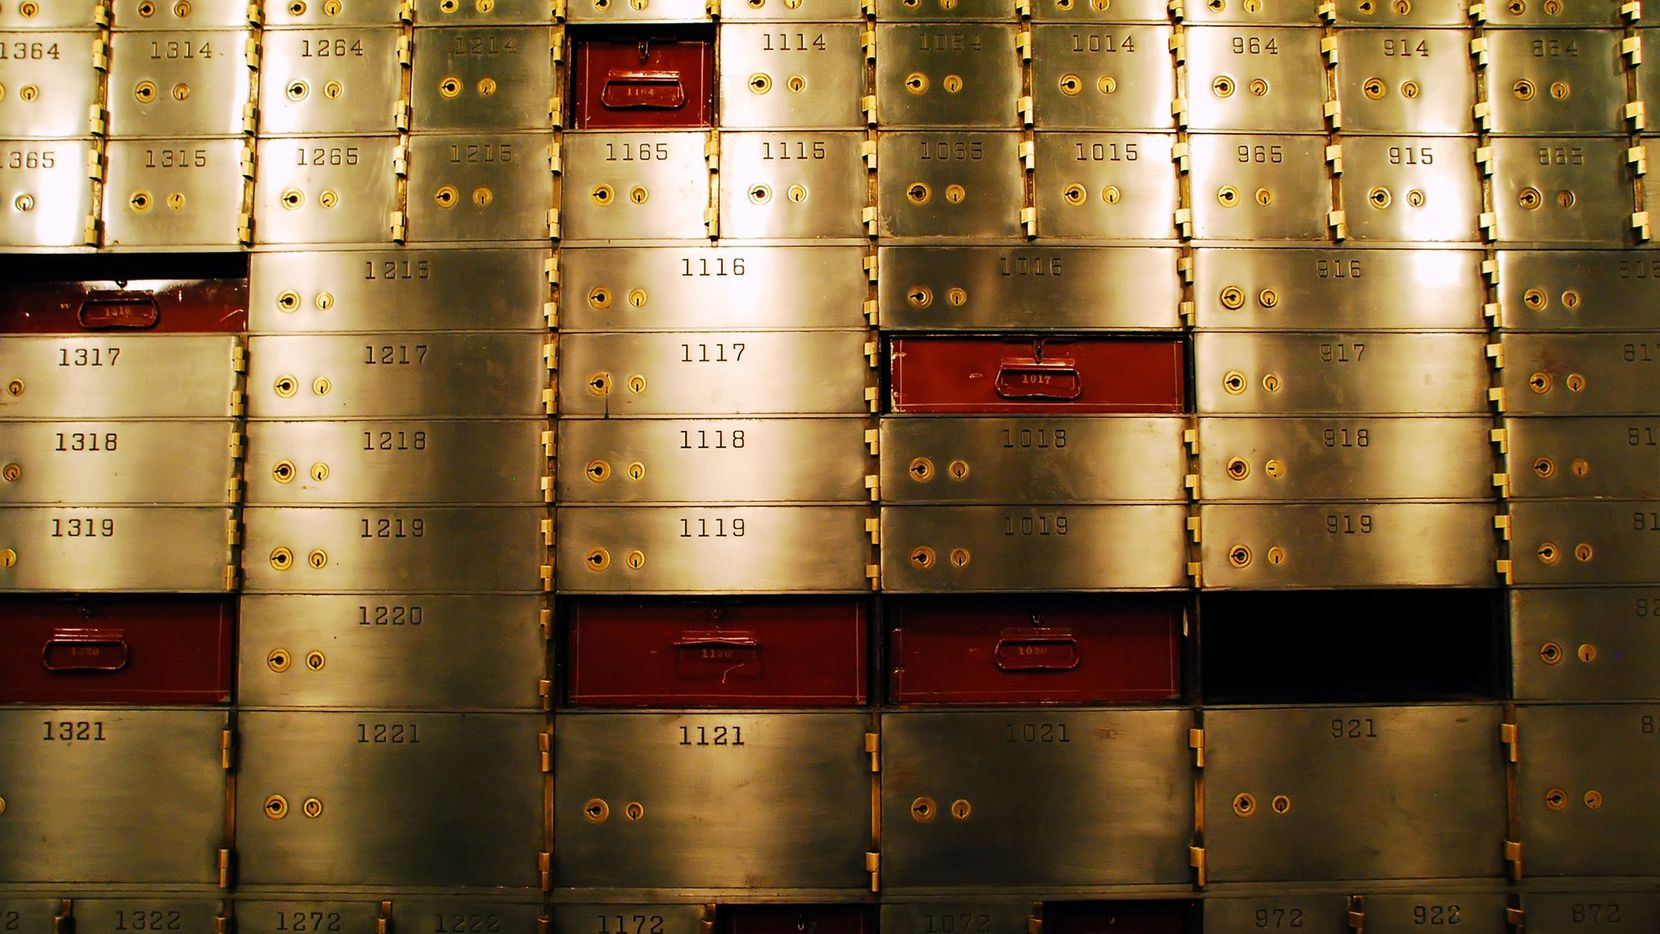 If you have a safe deposit box, you should visit it once a year to make sure your payments and contact details are current.